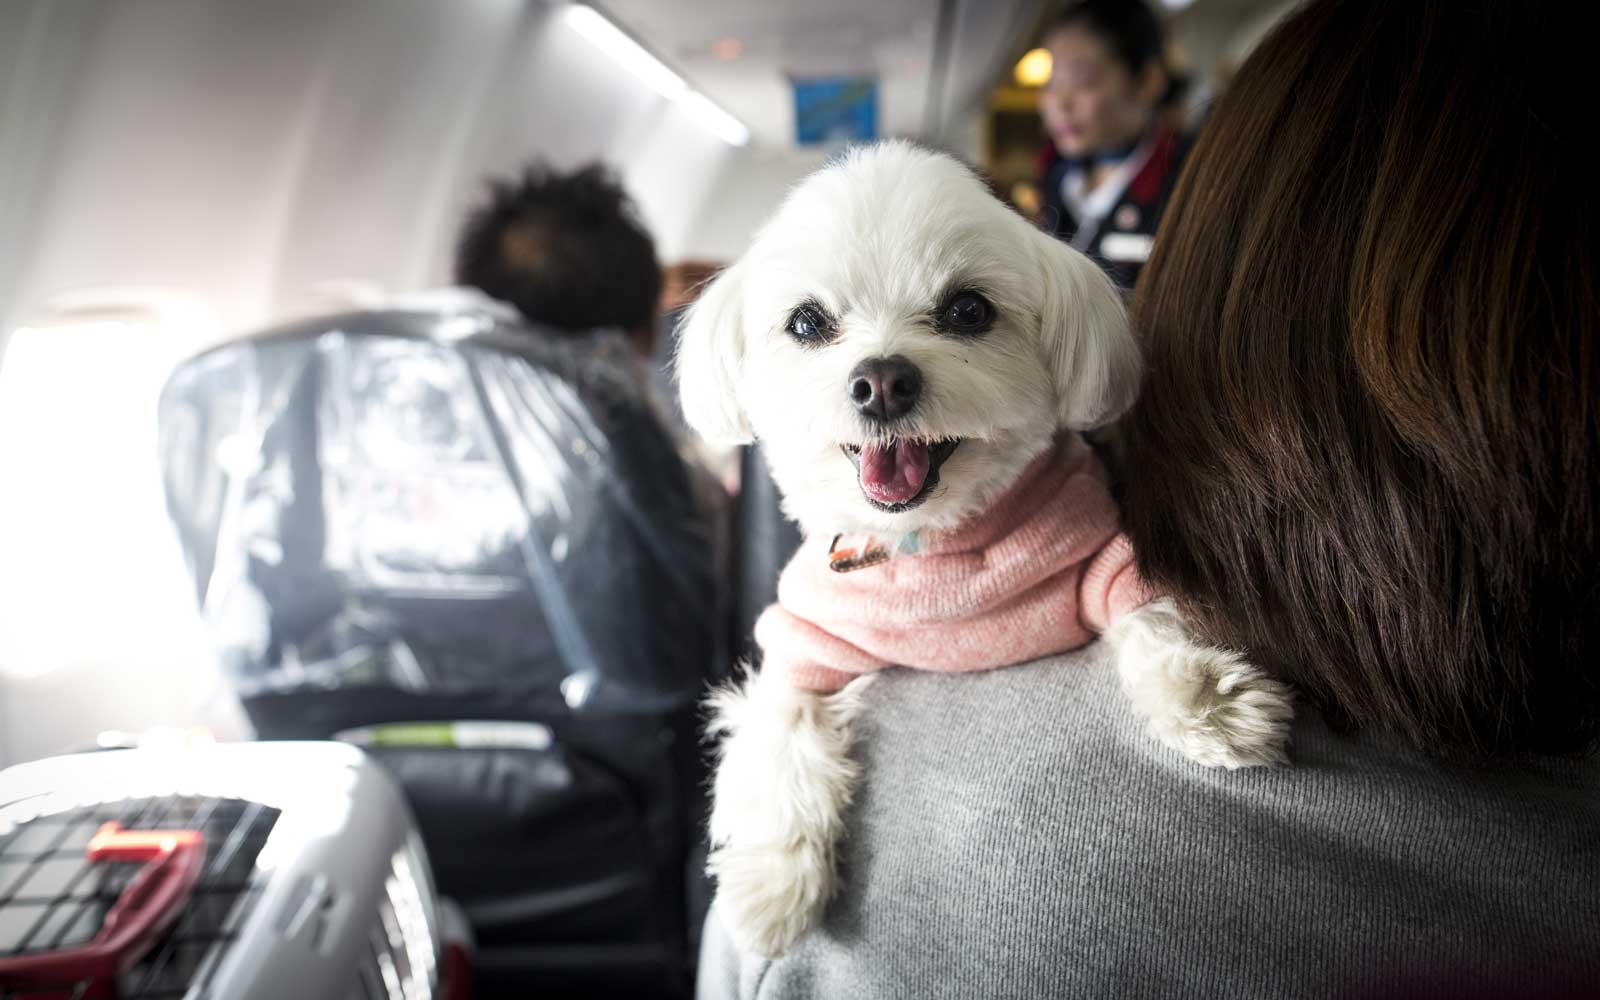 What to Do on Your Next Flight If You Have Animal Allergies